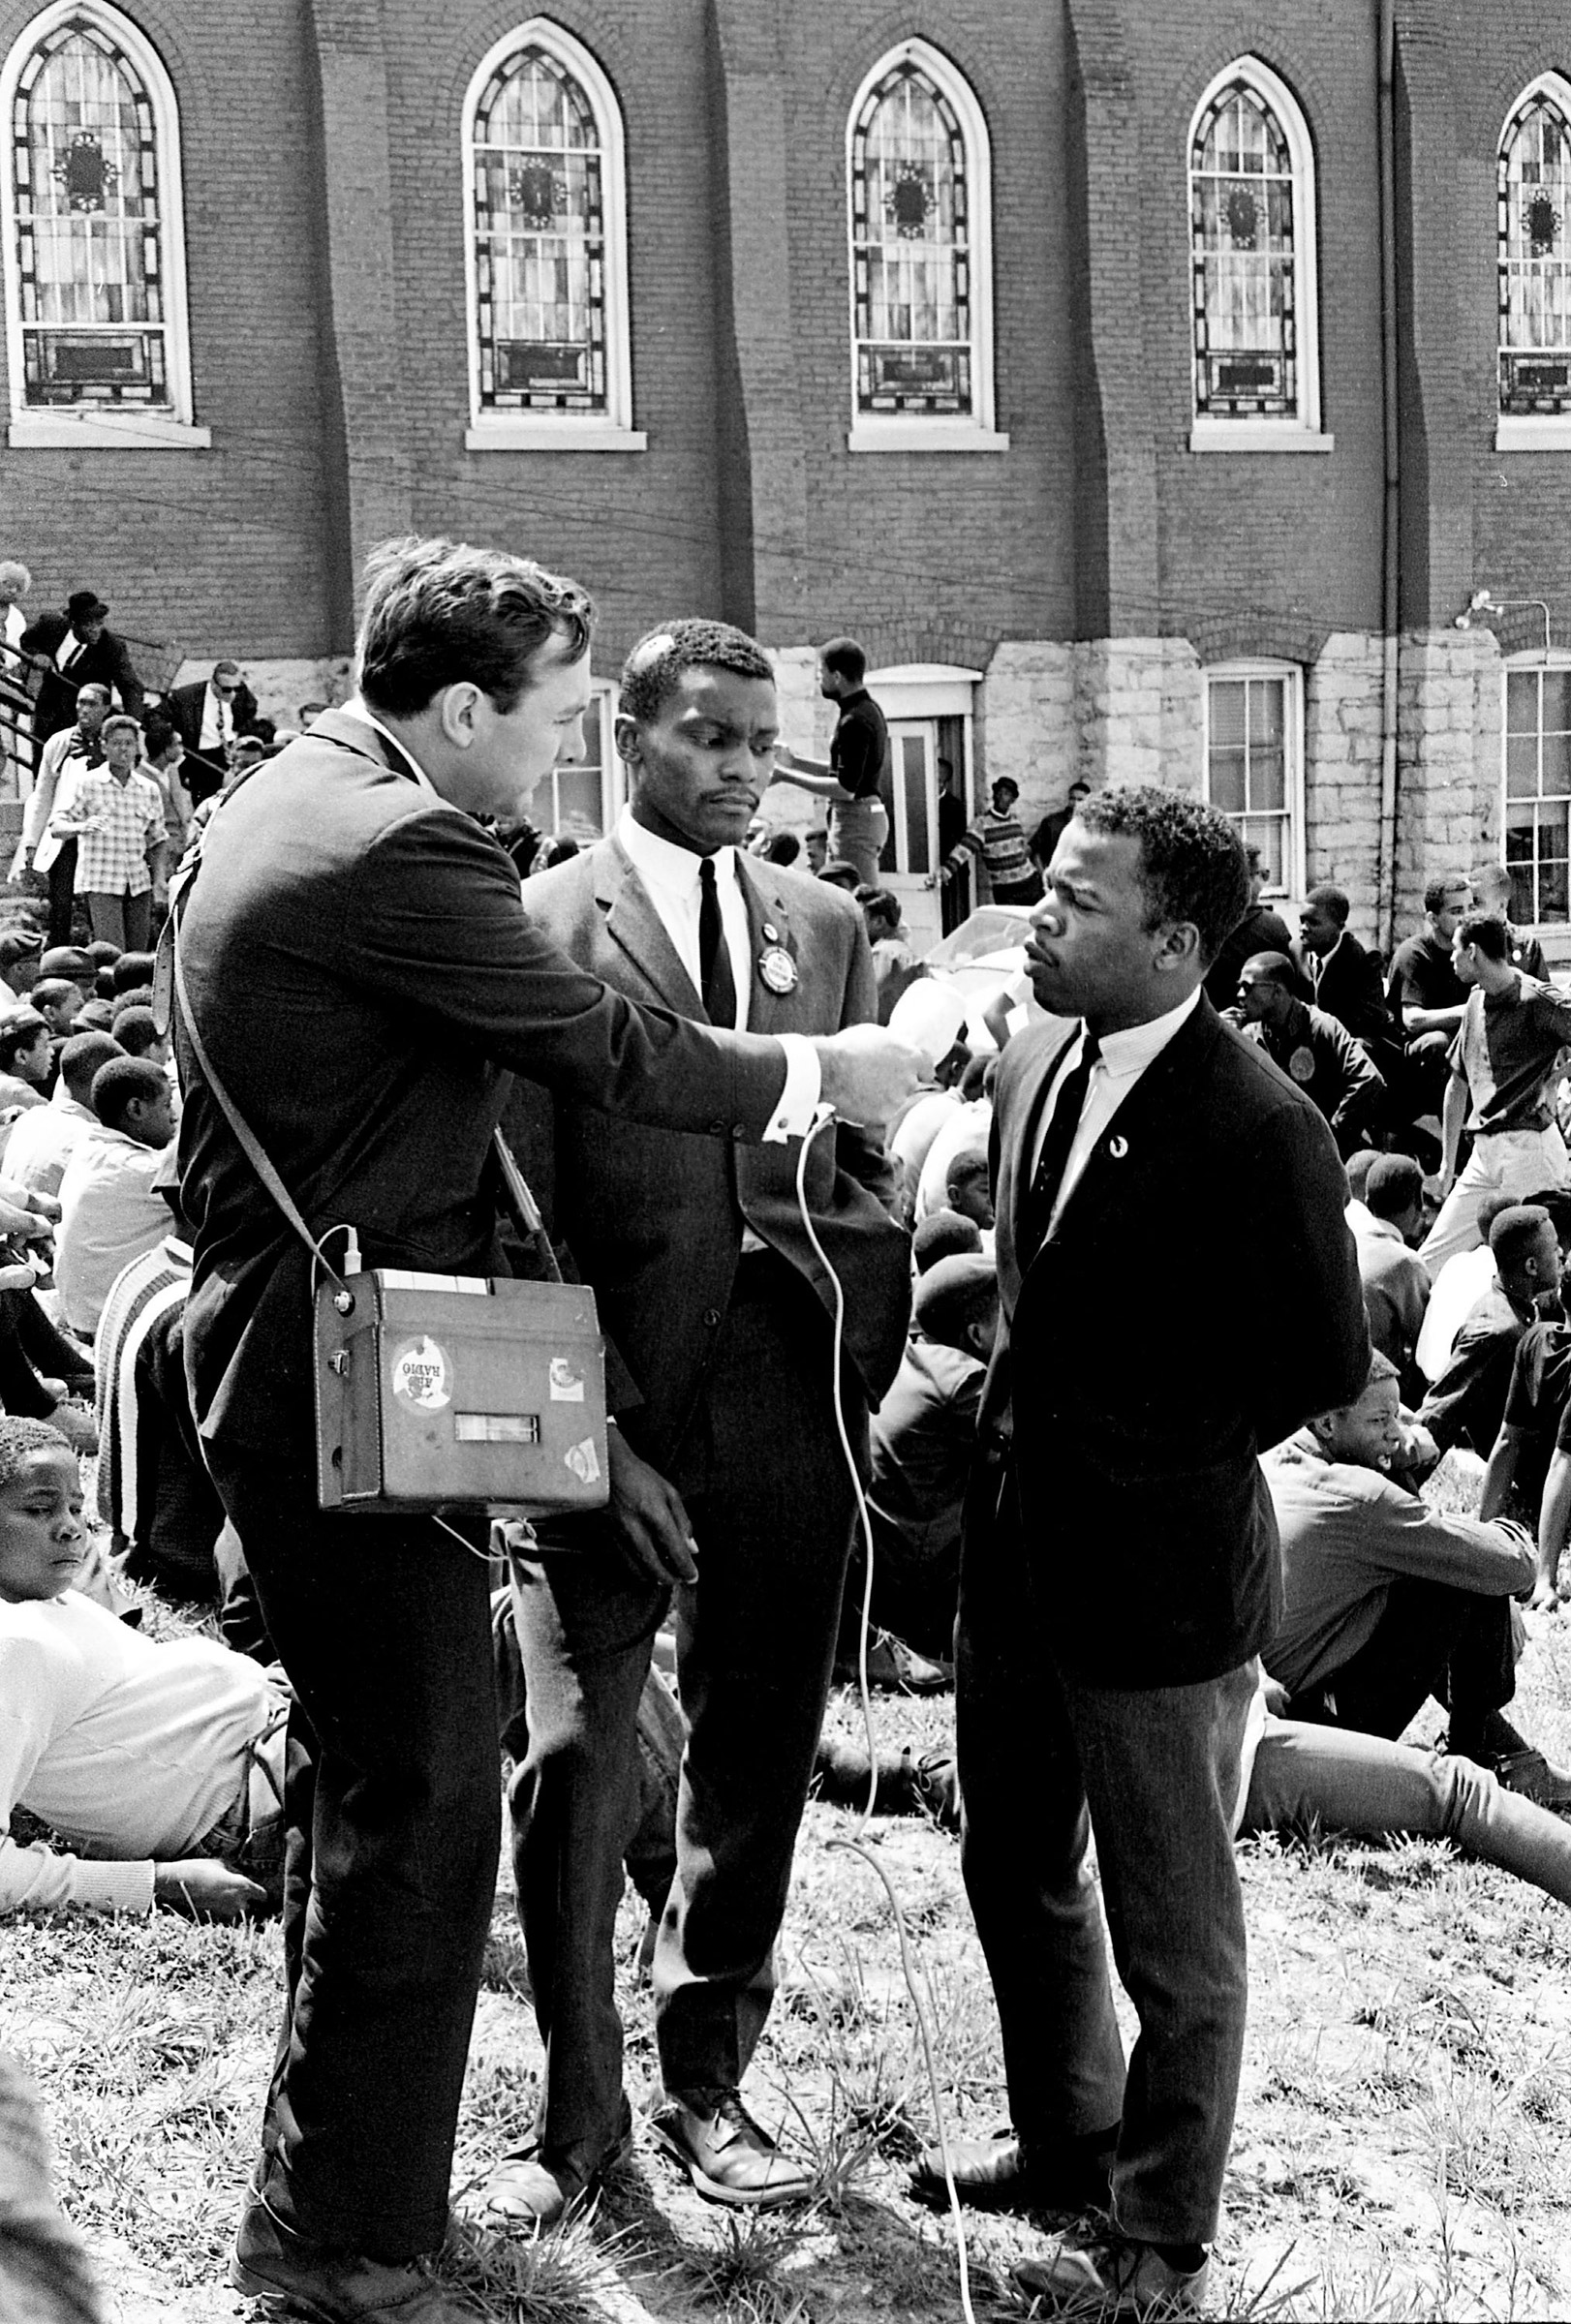 John Lewis, right, and Lester McKinnie, center, are interviewed by ABC News at the sit-in demonstrators' base at the First Baptist Church in Nashville on April 30, 1964.